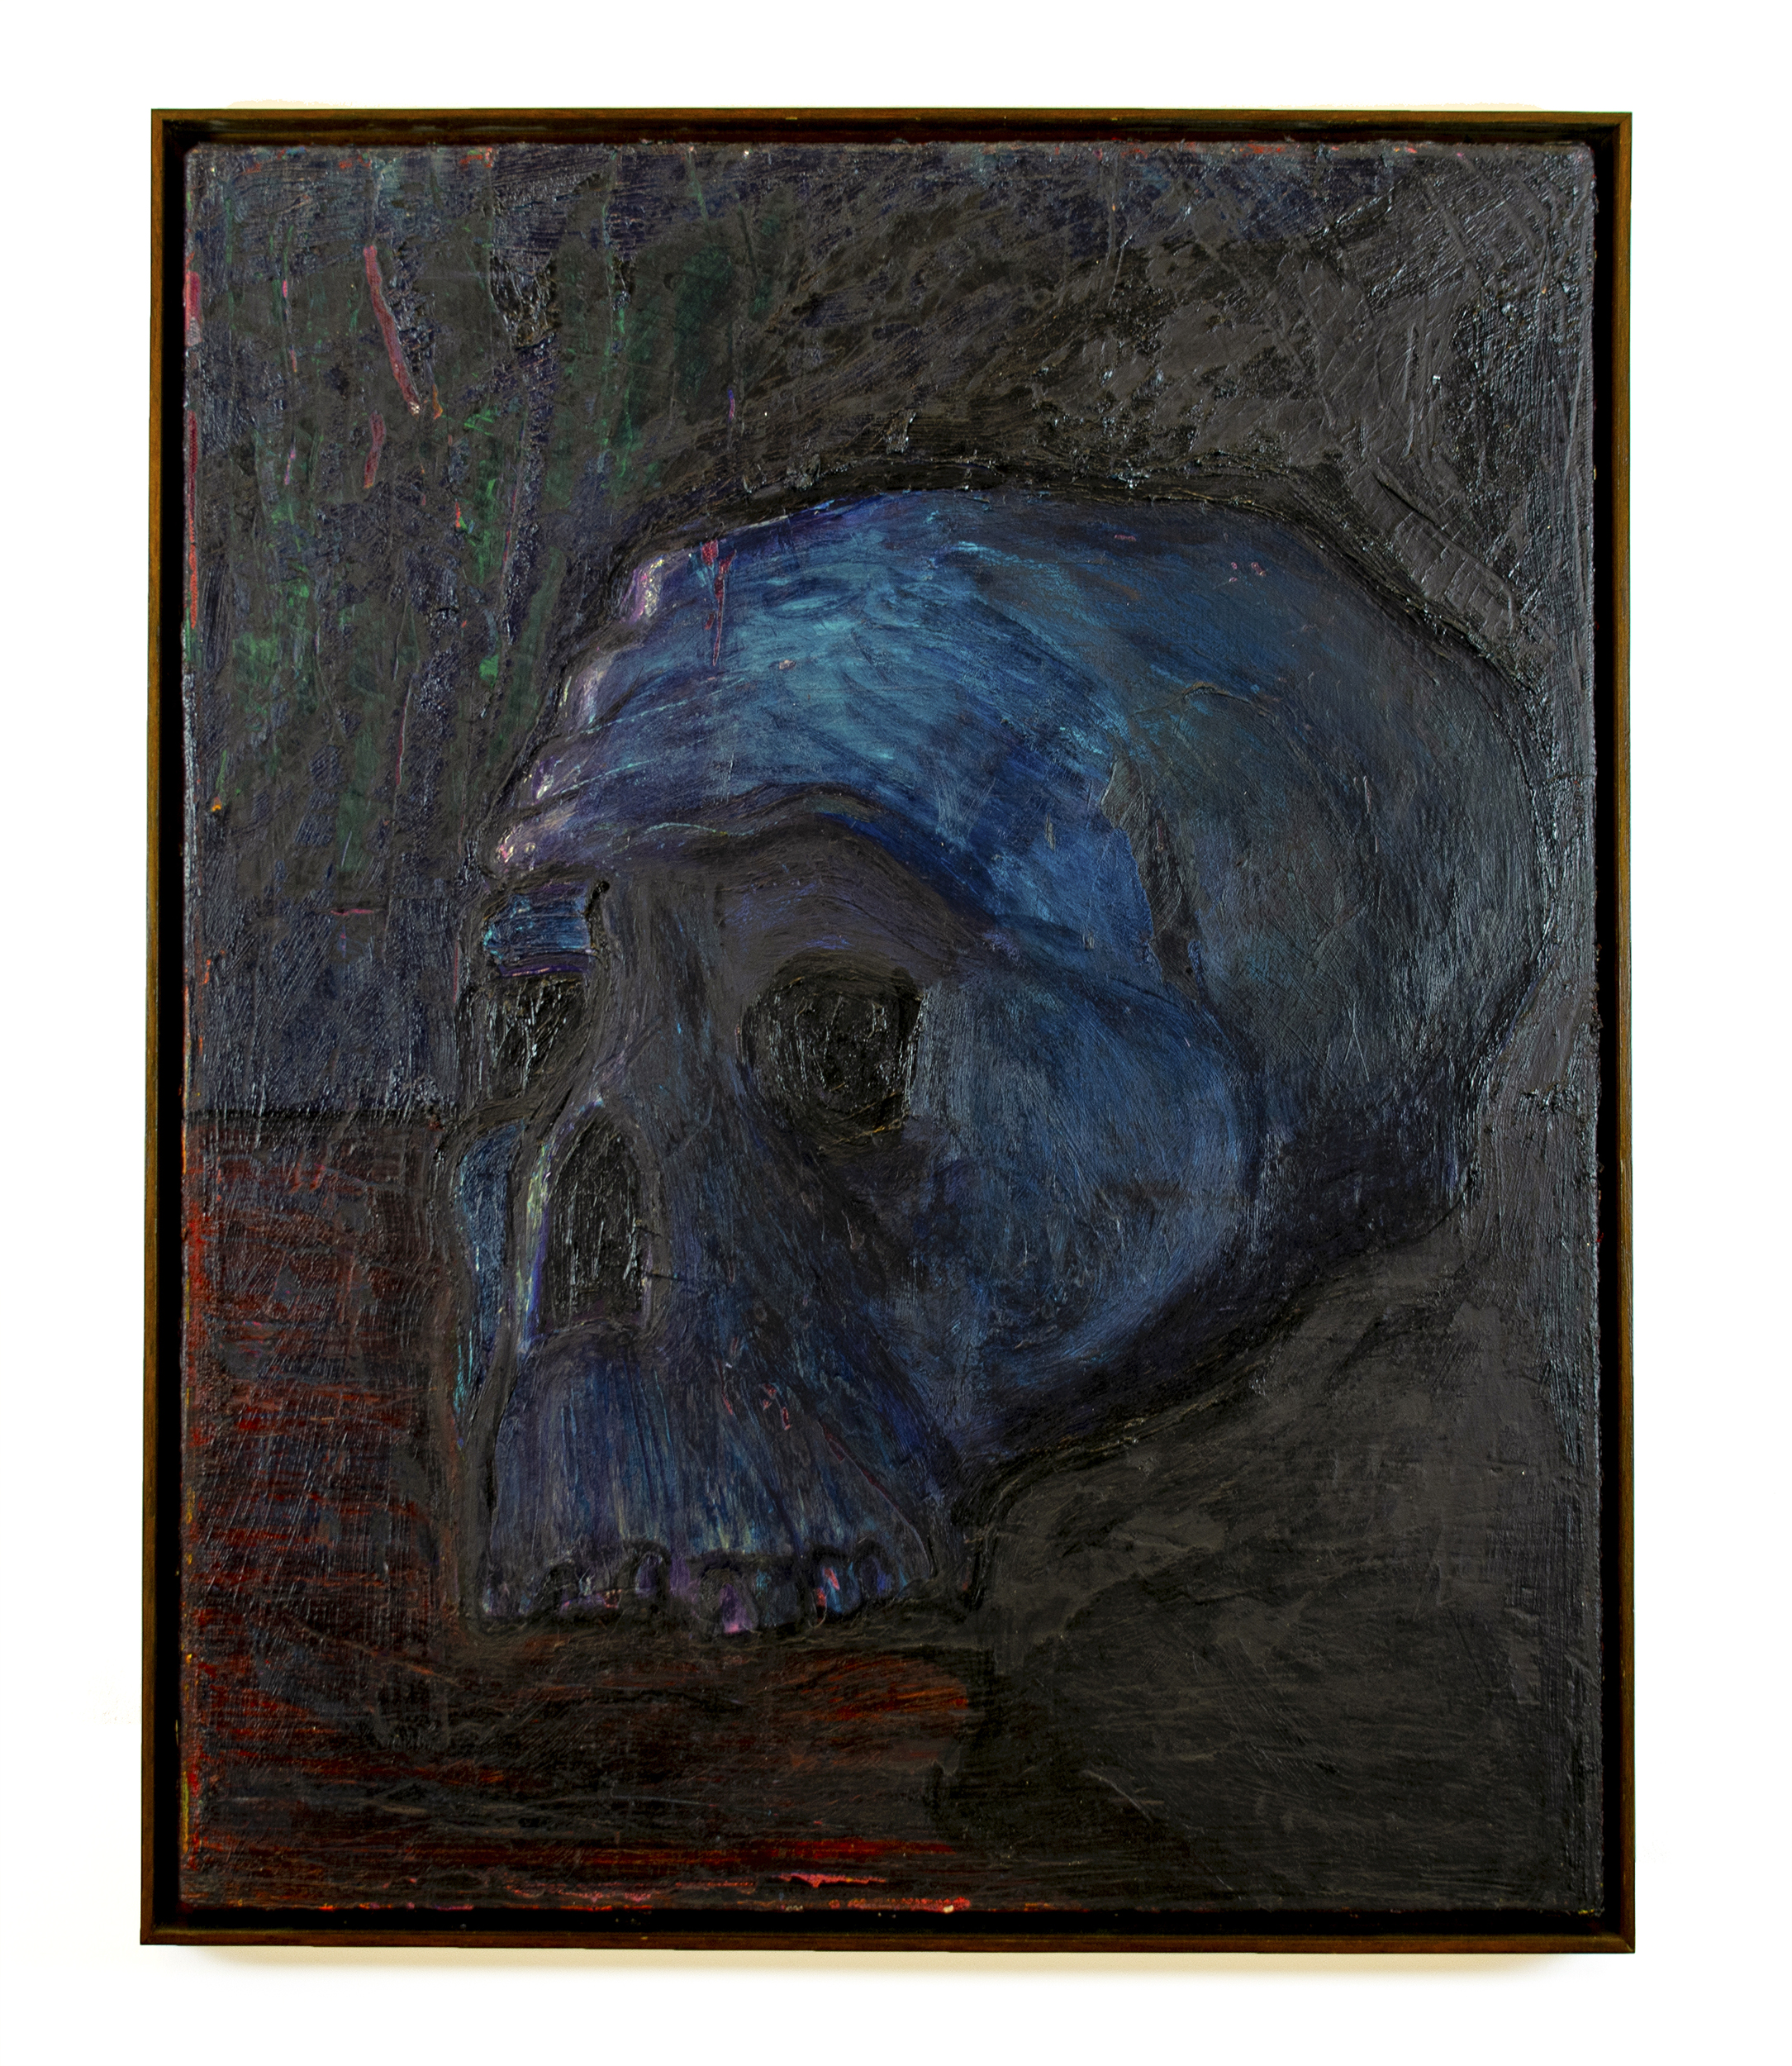 "David Bance, 'Yorick', 20"" x 16"", oil and distemper on linen, 2017"